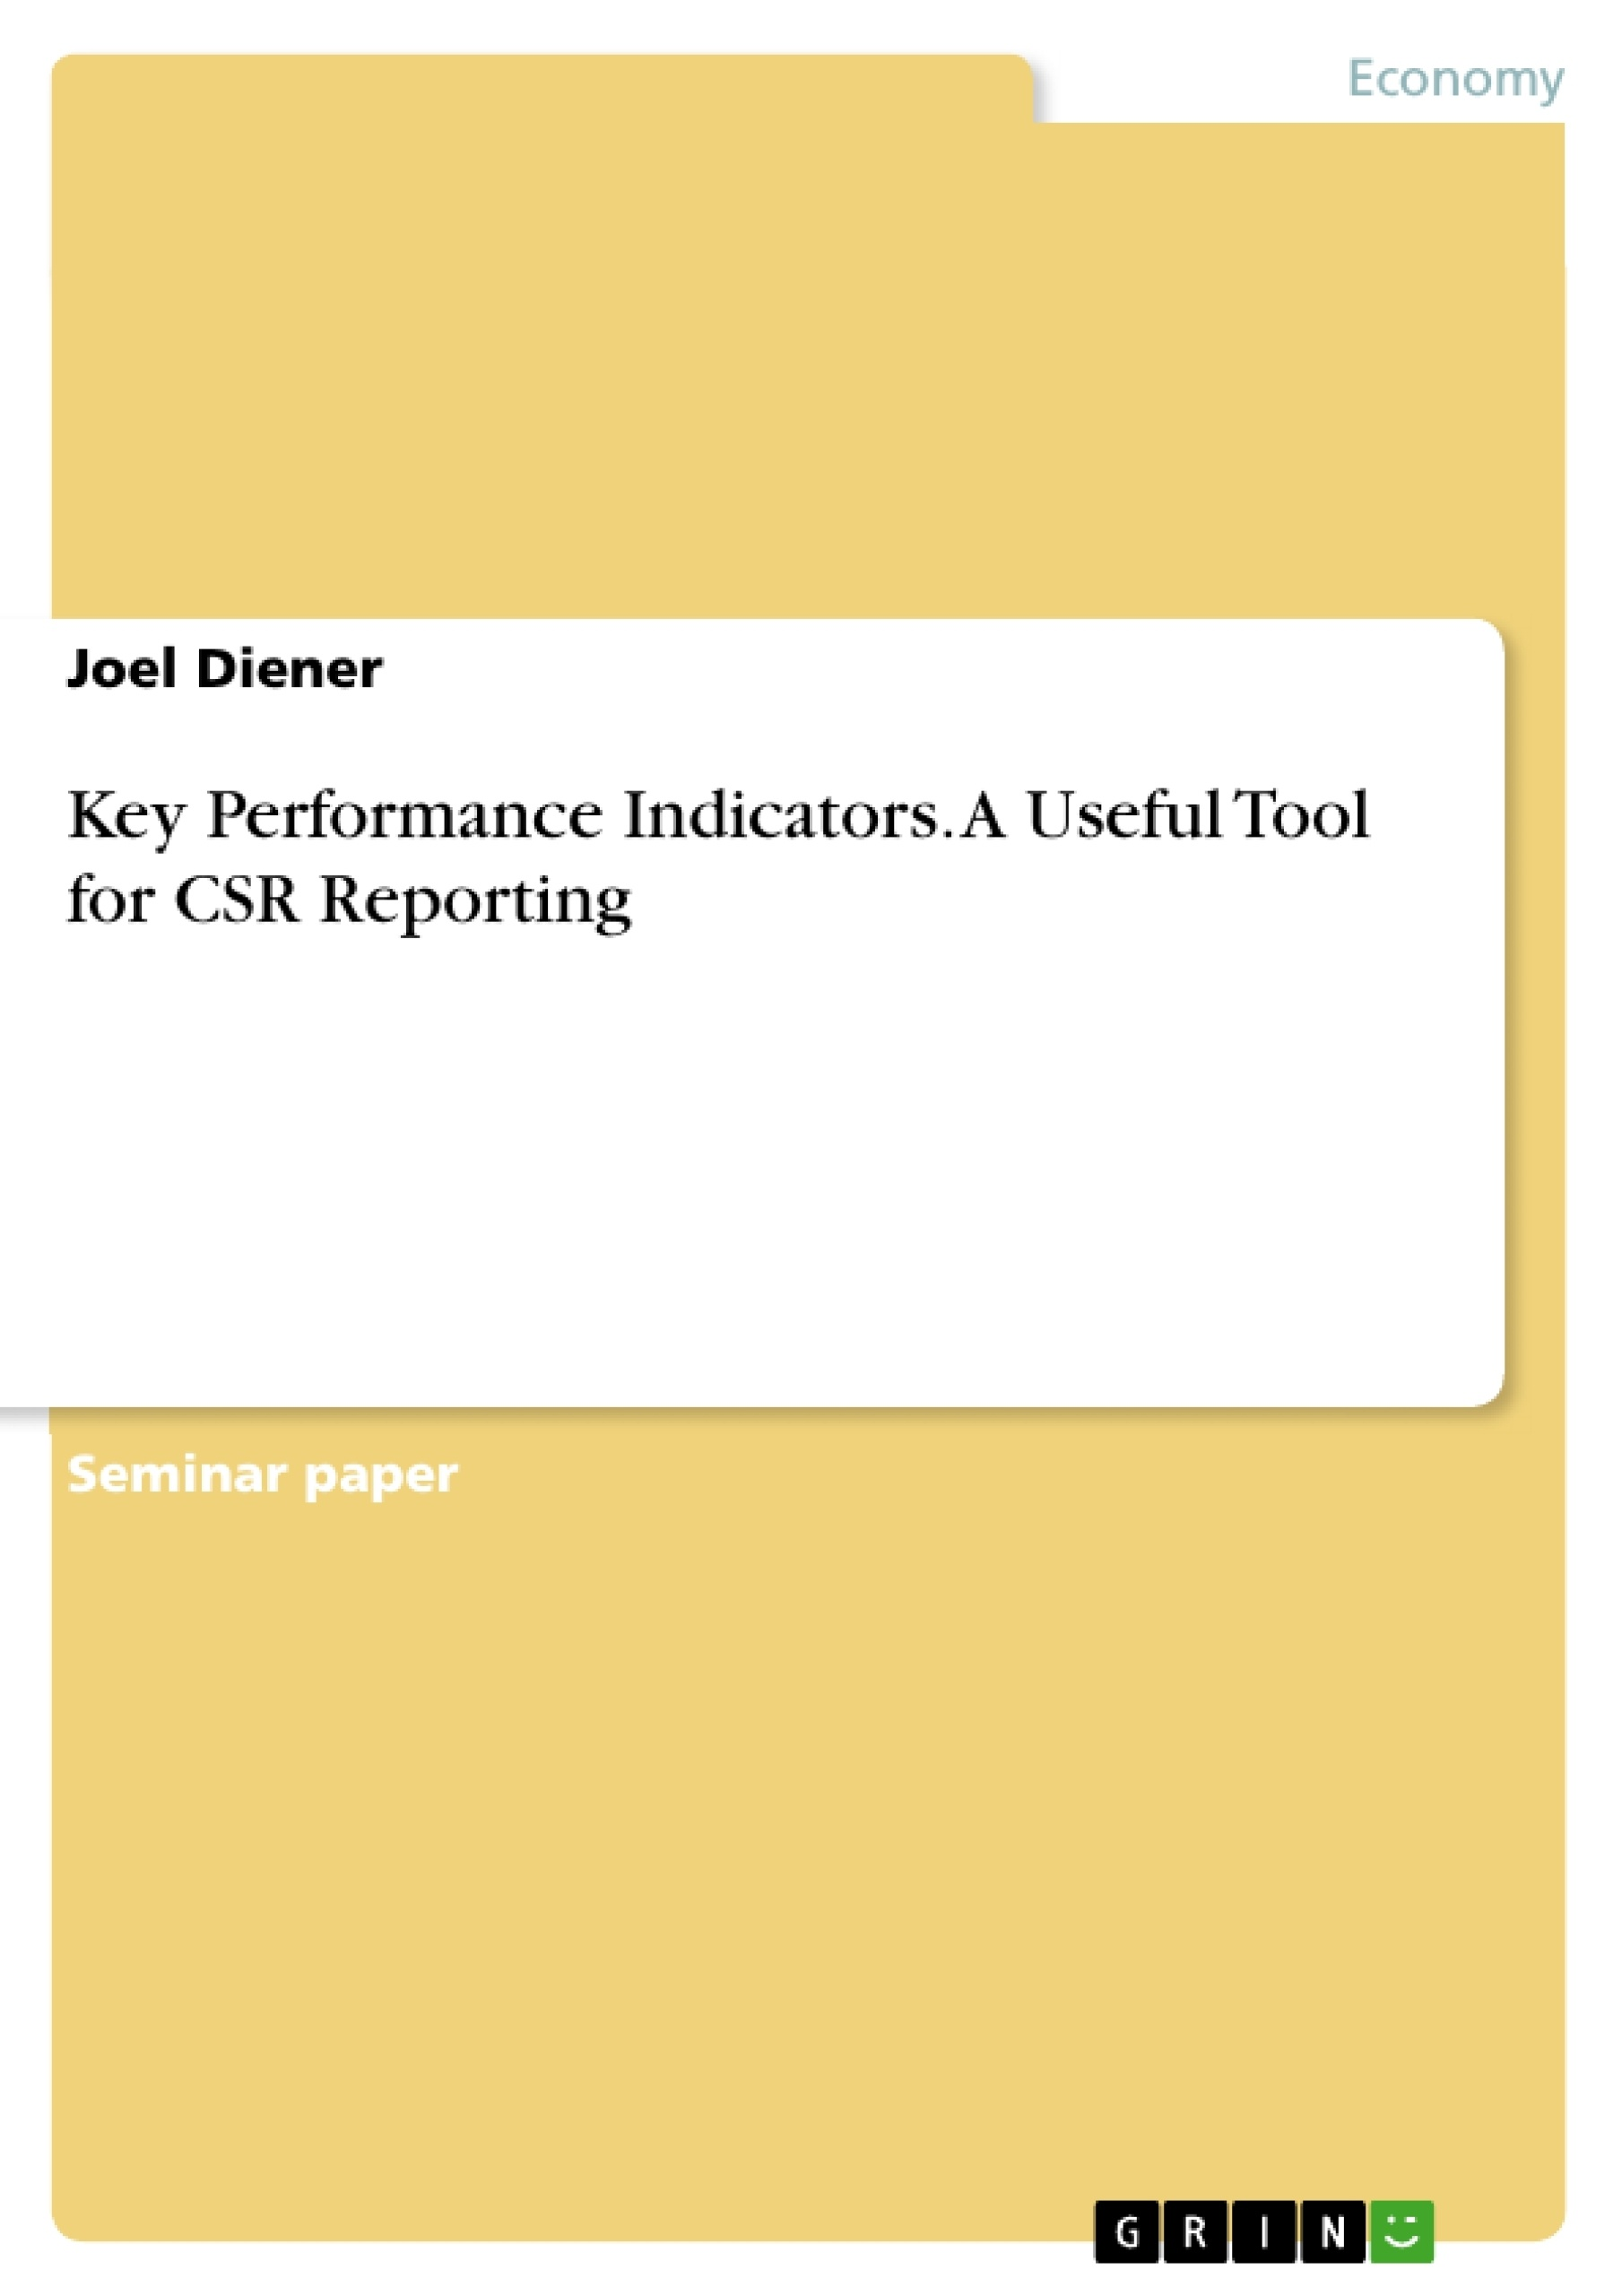 Title: Key Performance Indicators. A Useful Tool for CSR Reporting